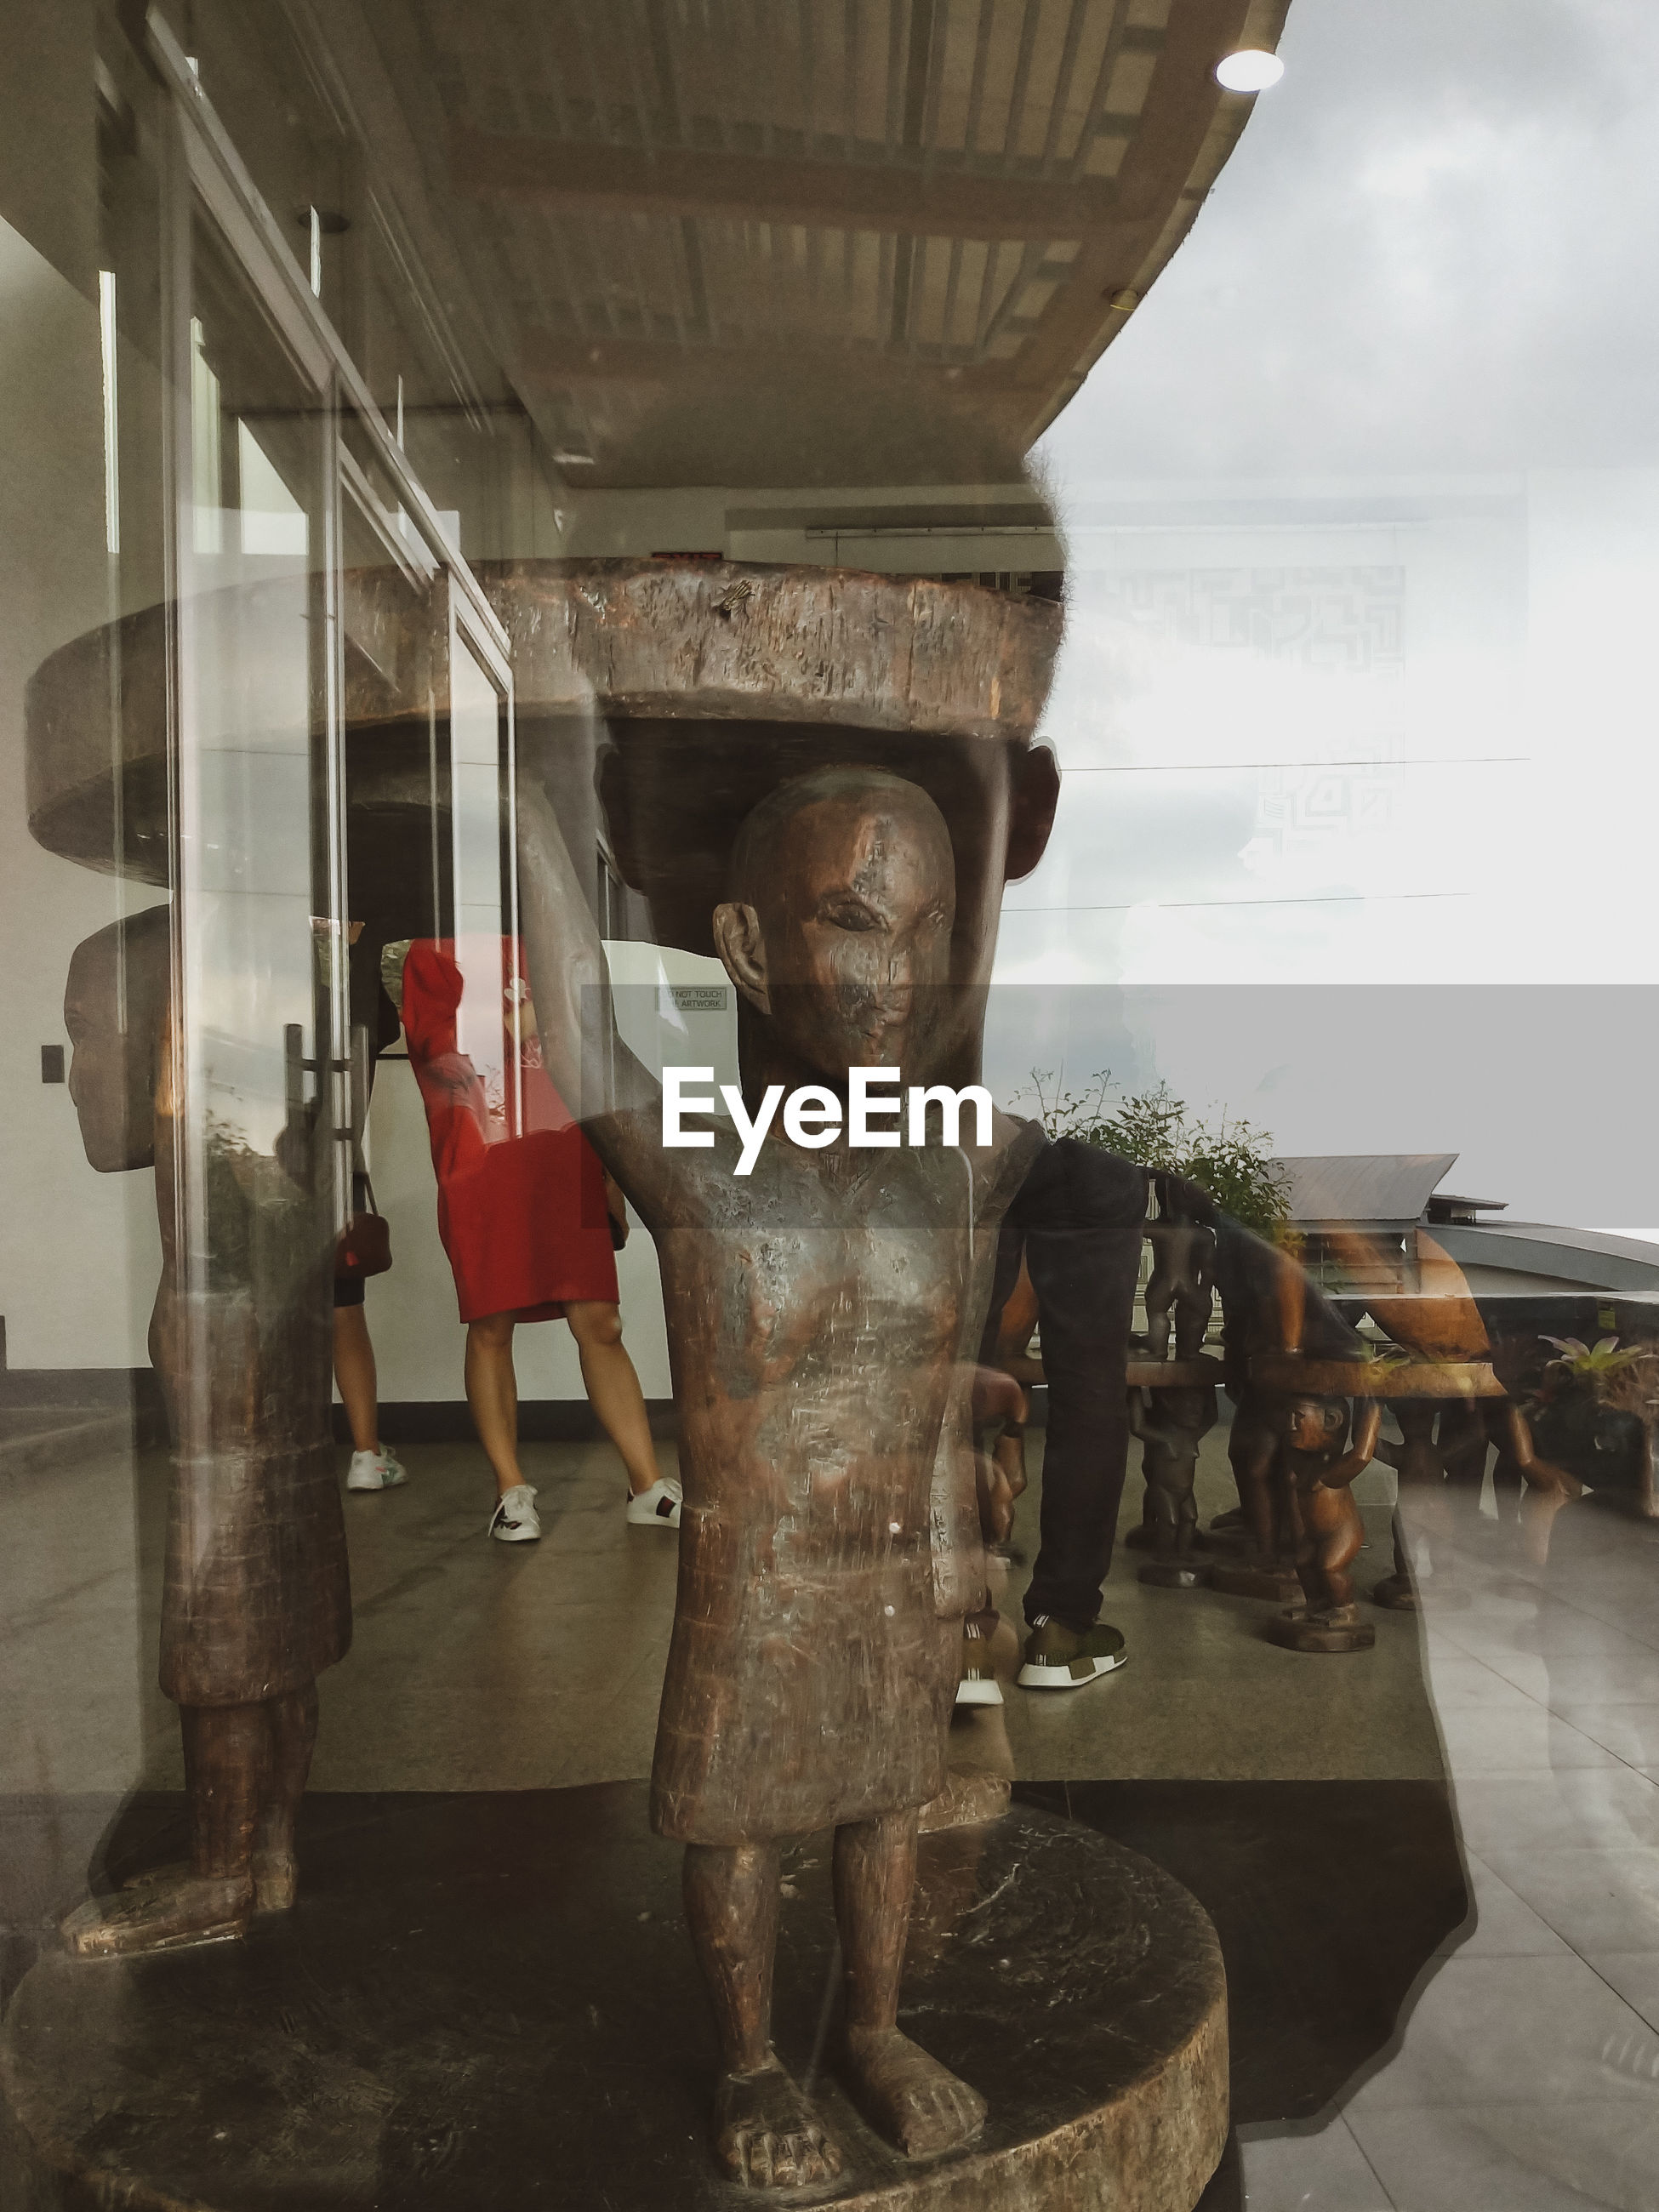 DIGITAL COMPOSITE IMAGE OF STATUE AND WOMAN IN GLASS